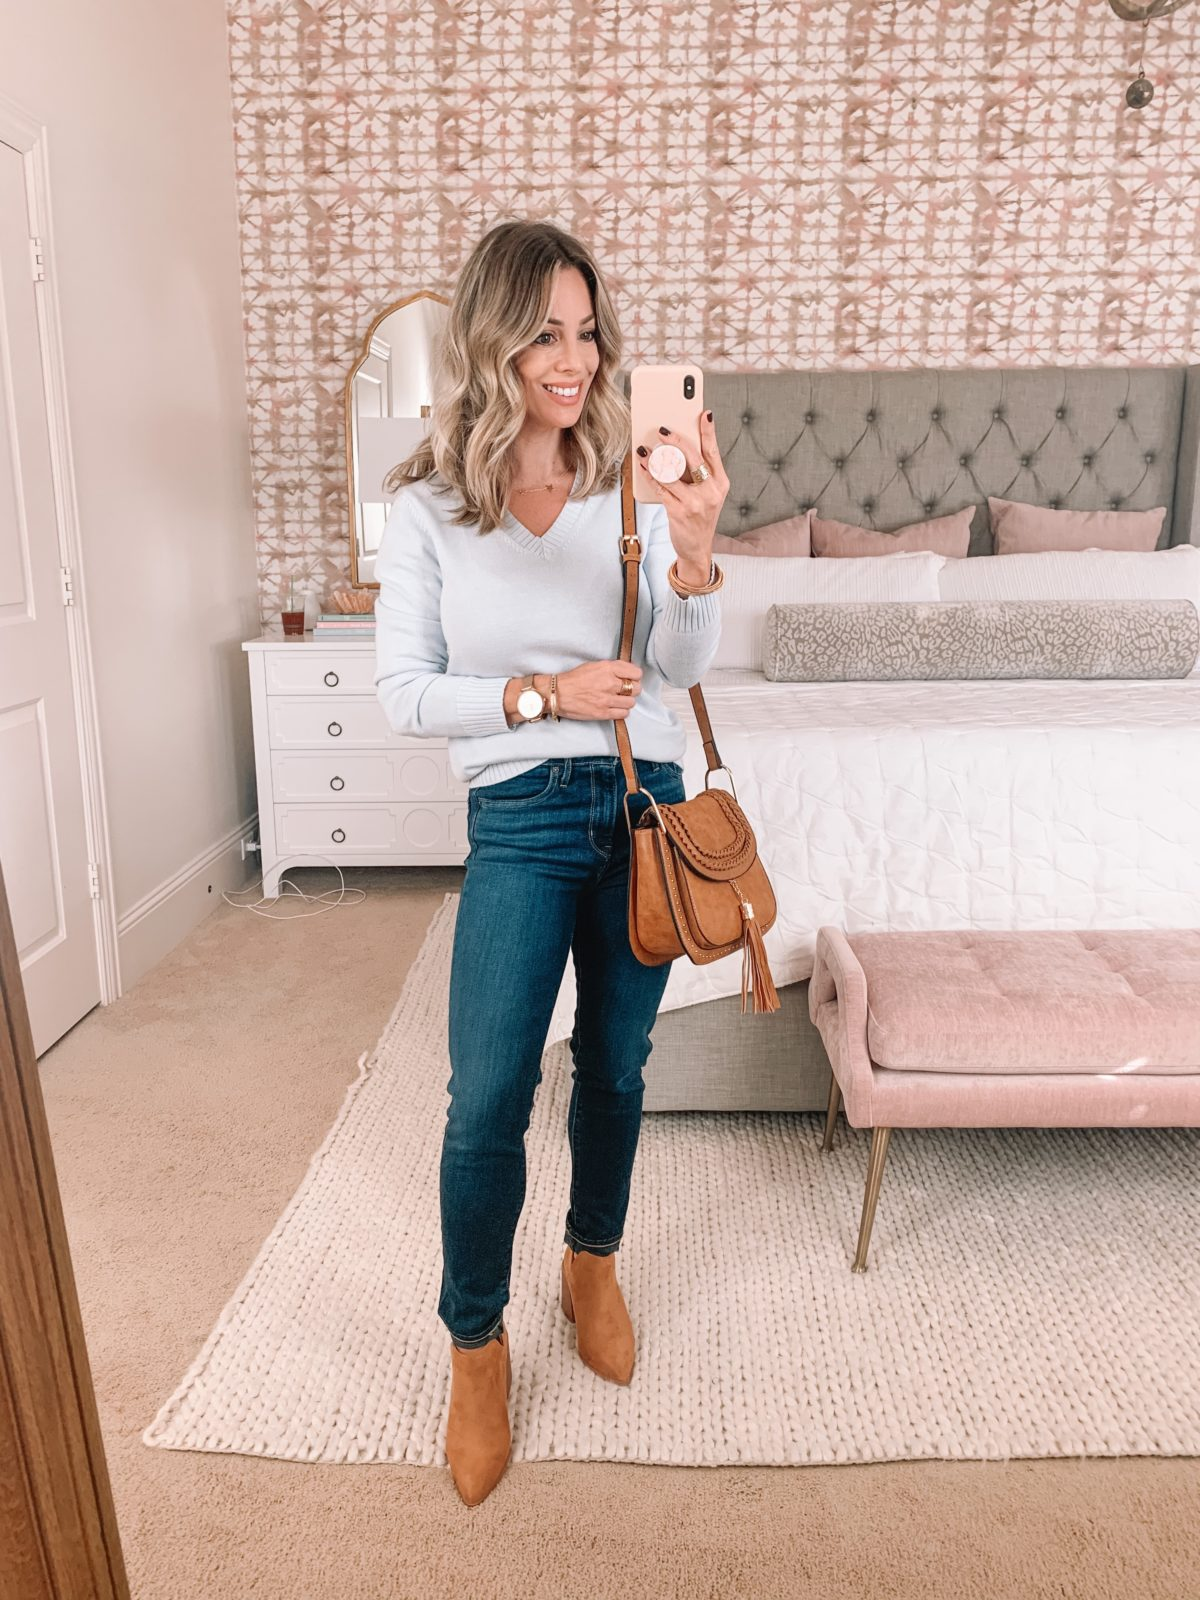 Amazon Fashion Faves, V Neck sweater, Skinny Jeans, Booties, Crossbody.